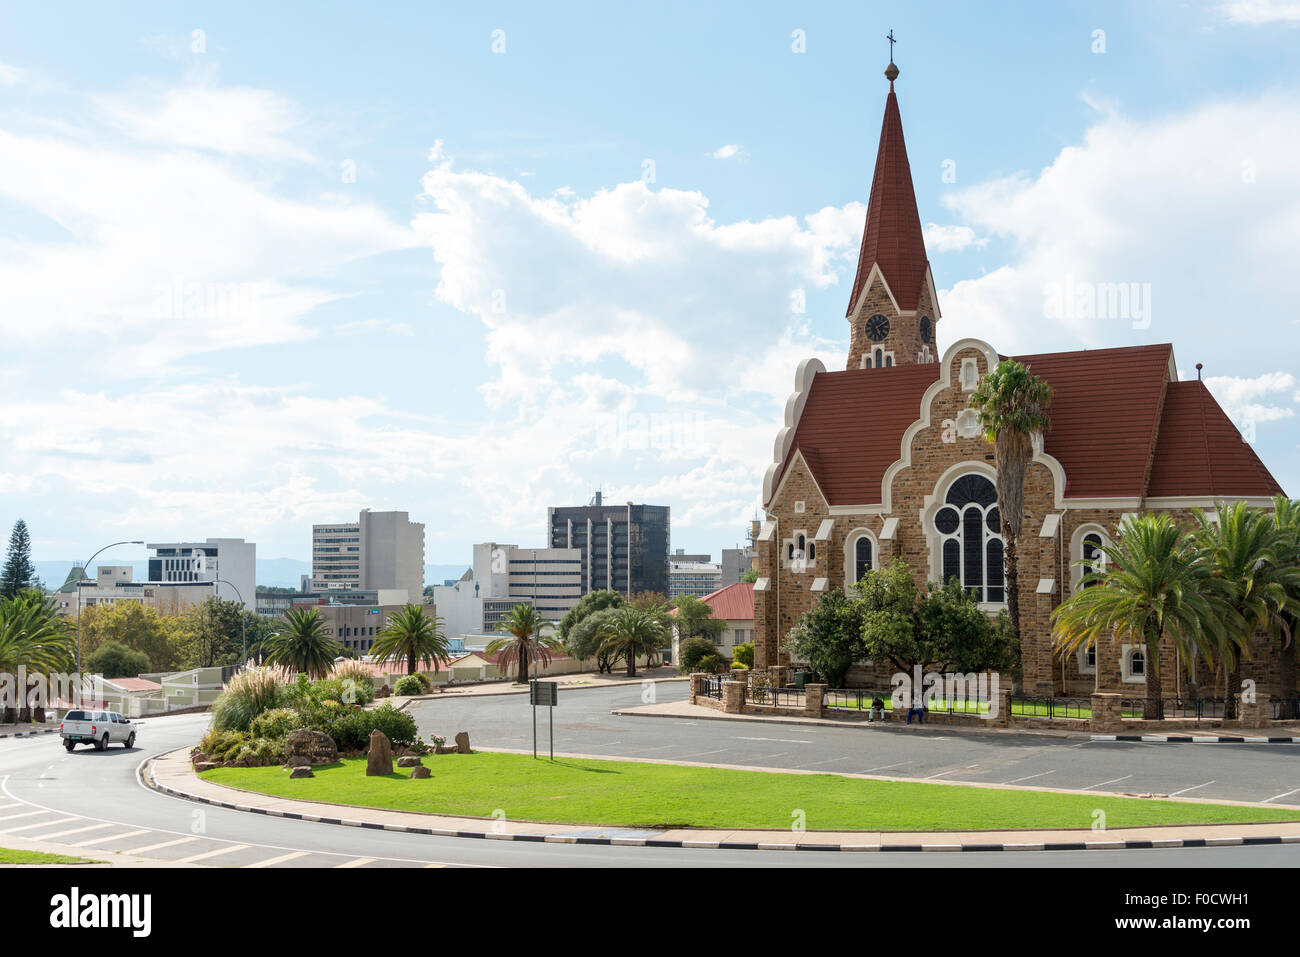 City view and Lutheran Christ Church, Fidel Castro Street, Windhoek (Windhuk), Khomas Region, Republic of Namibia - Stock Image